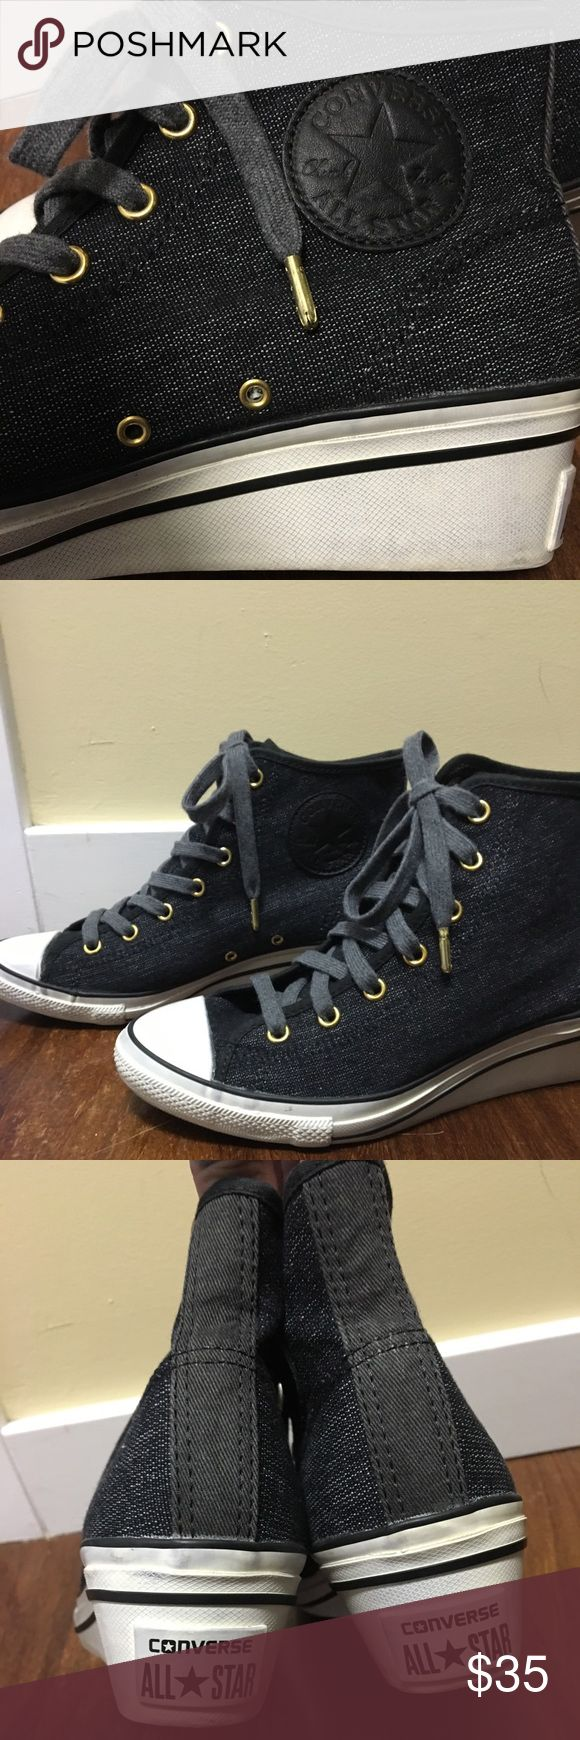 Converse wedge sneakers Super cute converse wedge sneaker. Only worn a few times. Converse Shoes Sneakers